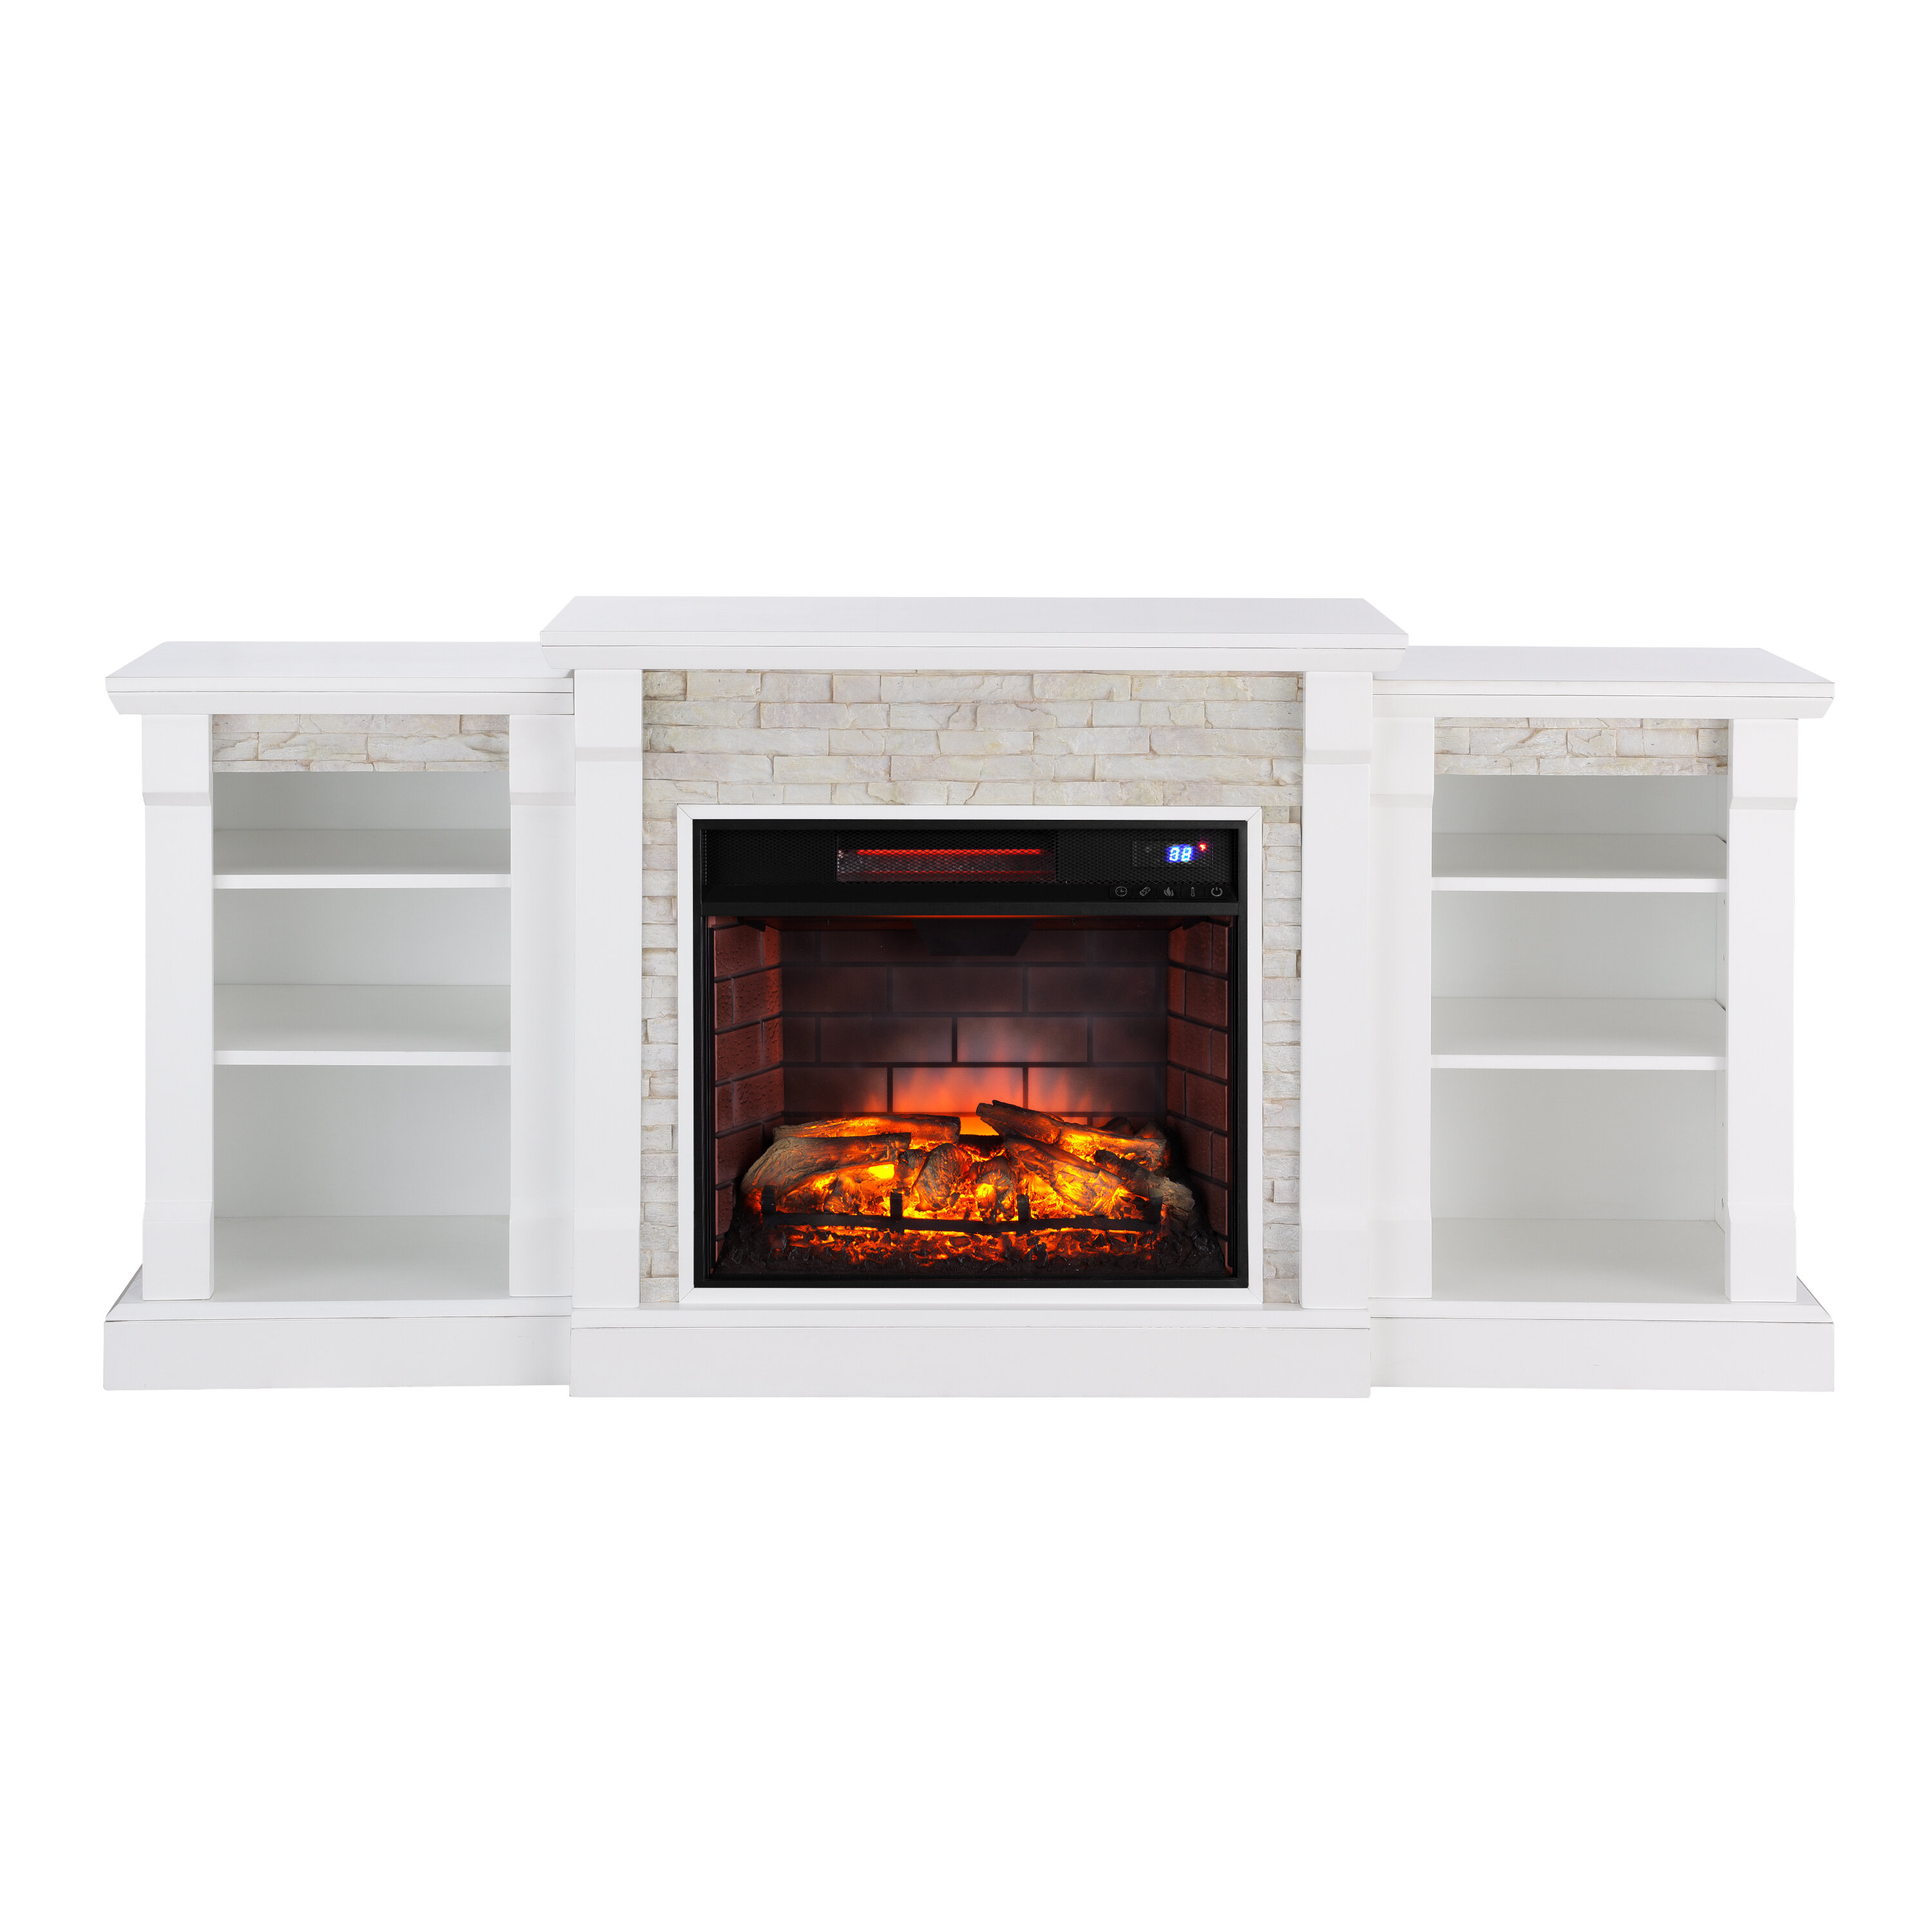 fireplace gas dallas lots unlimited pa big manahawkin nj bayville s fireplaces tx electric